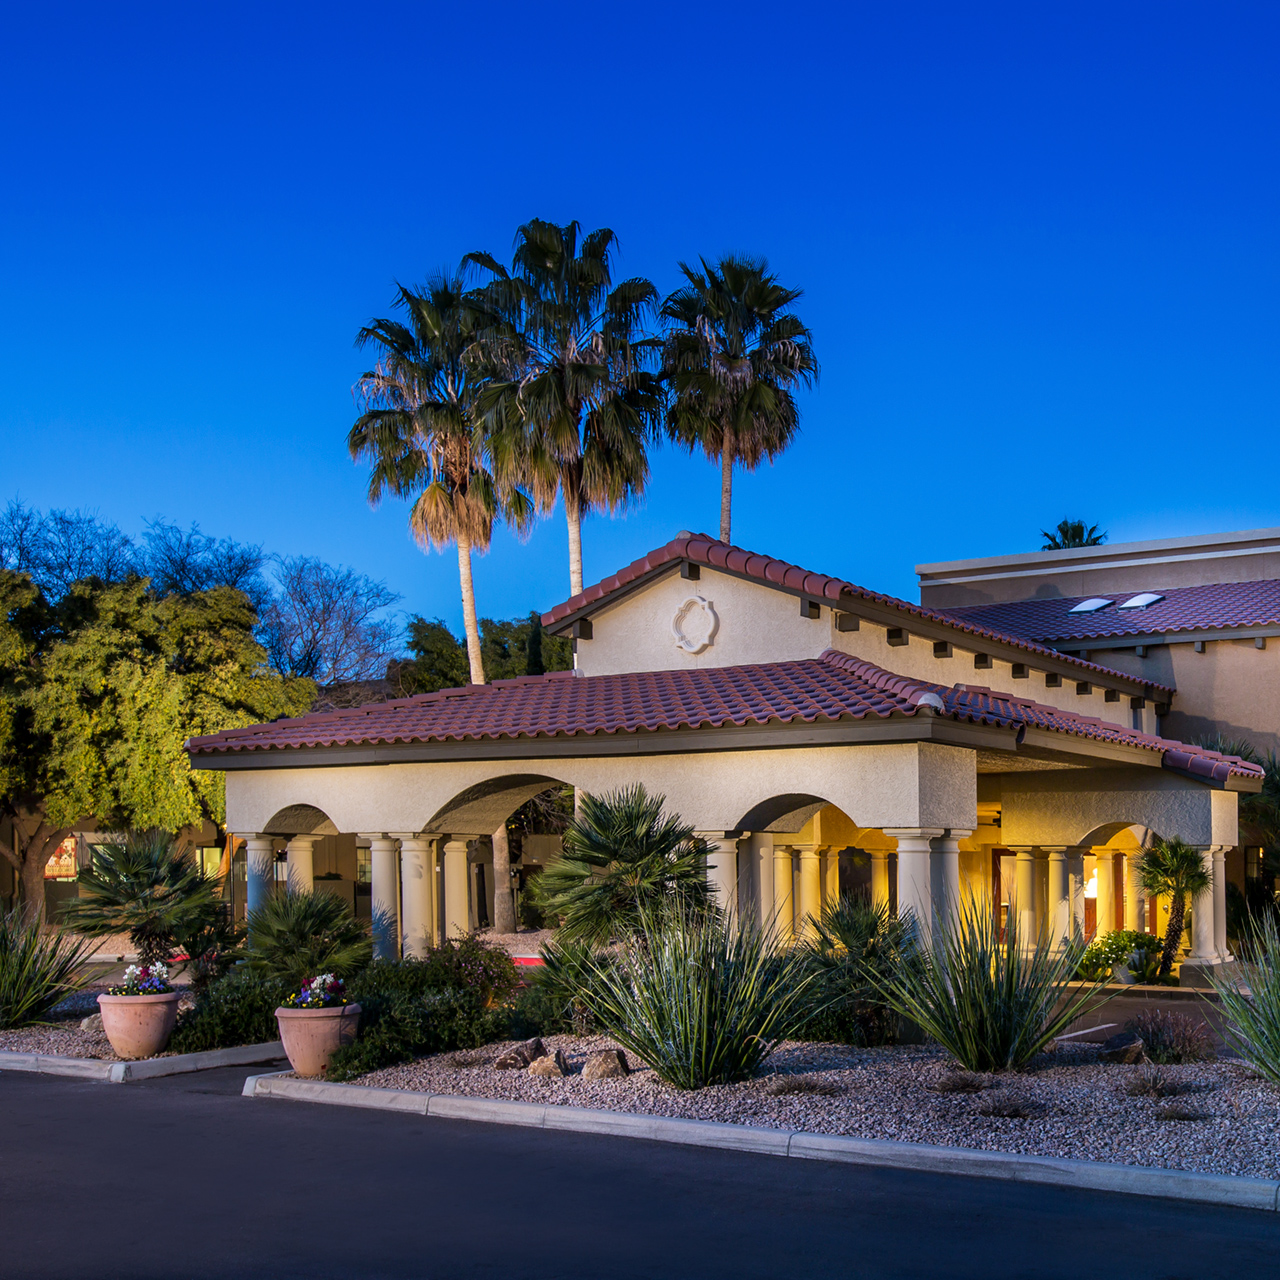 The Country Club of La Cholla exterior